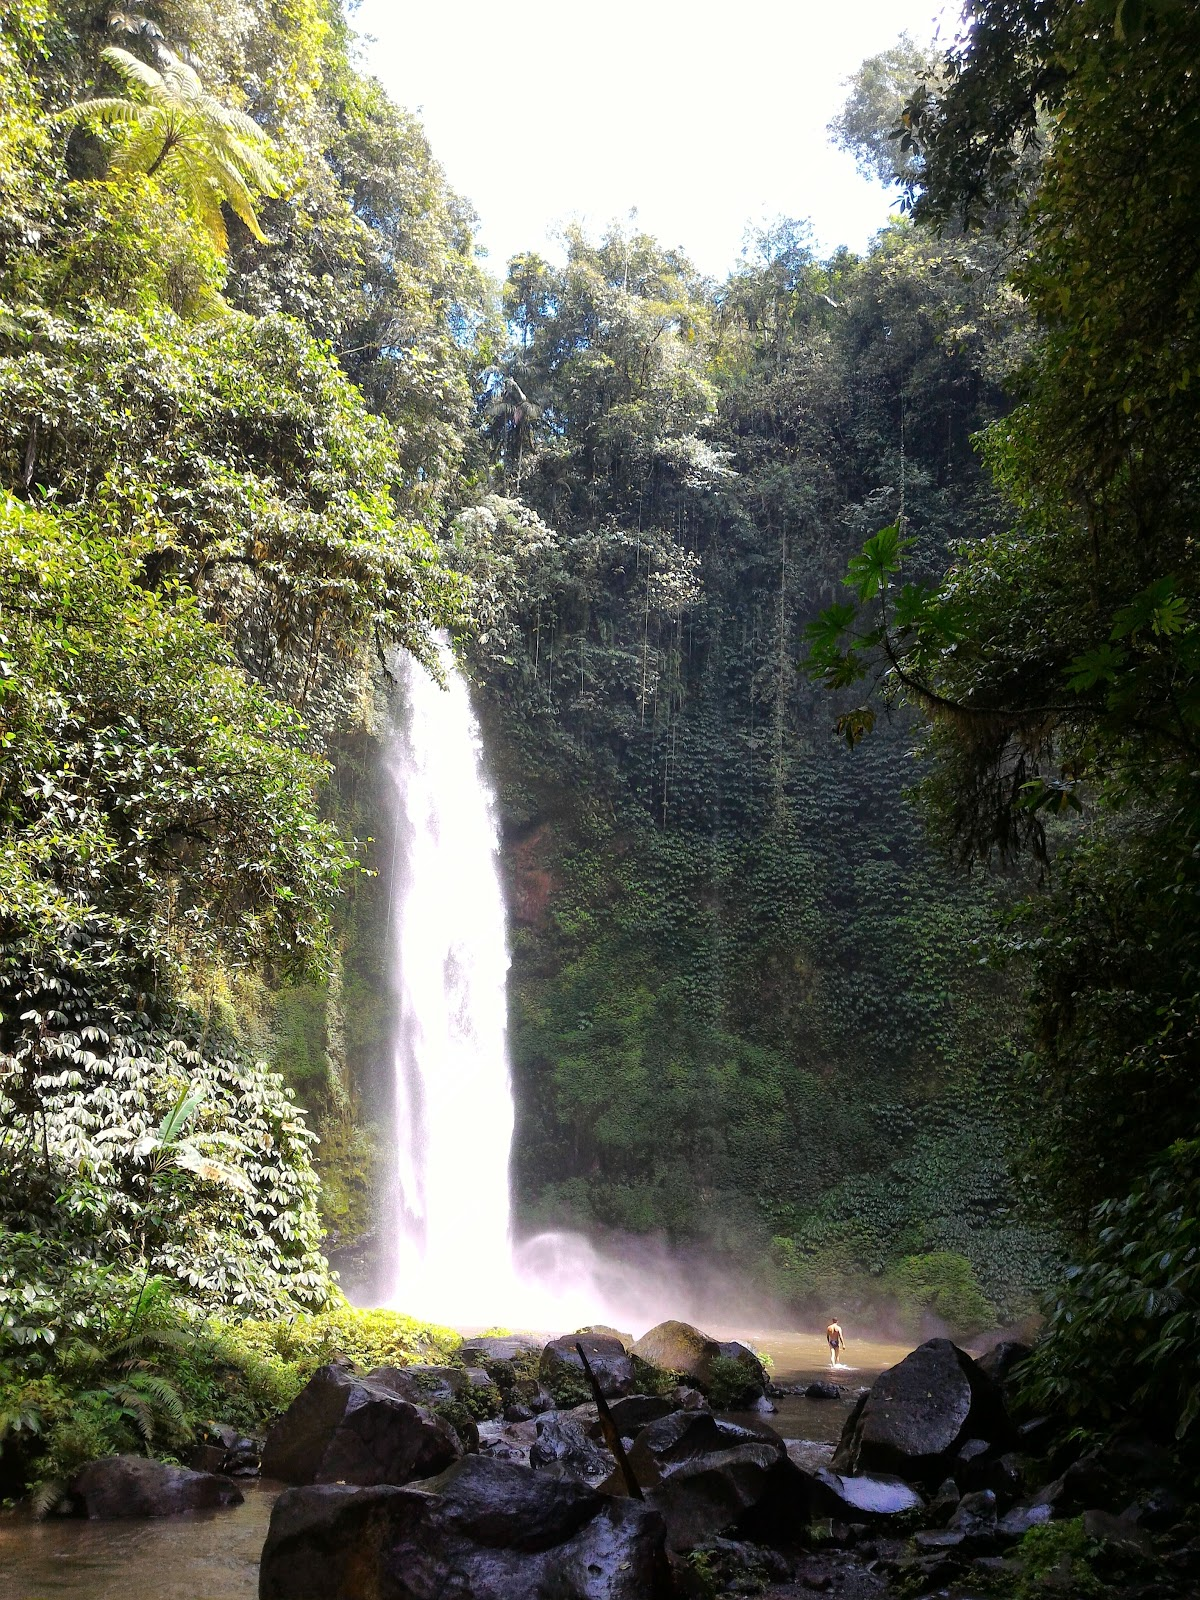 Nungnung Waterfall Cheap And Amazing Tour In Bali And East Java